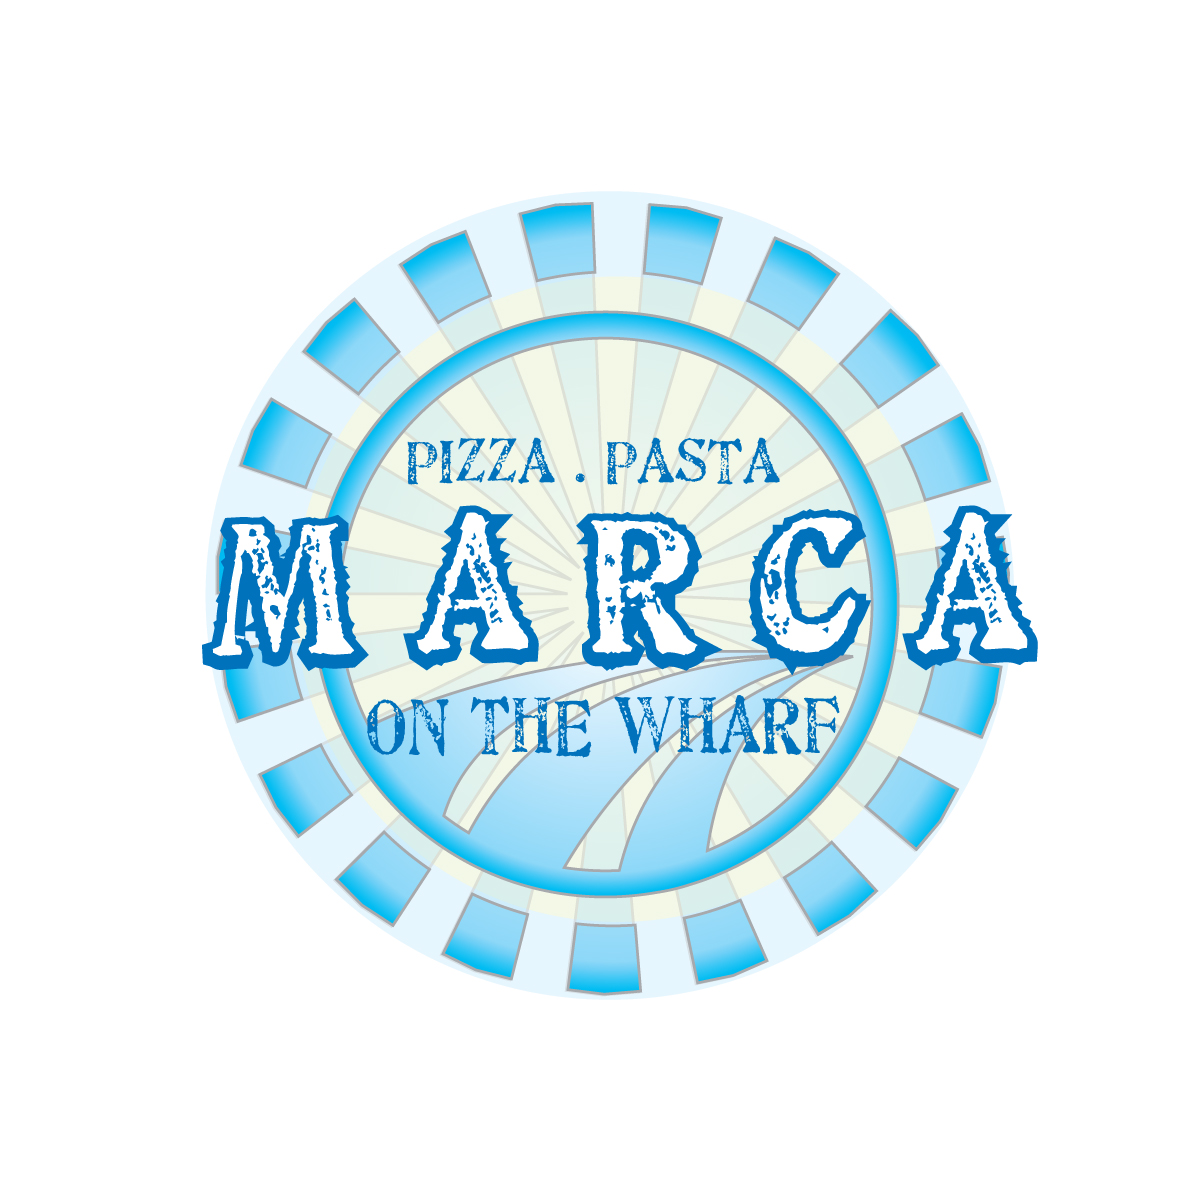 Logo Design by stormbighit - Entry No. 6 in the Logo Design Contest New Logo Design for Marca on the Wharf.